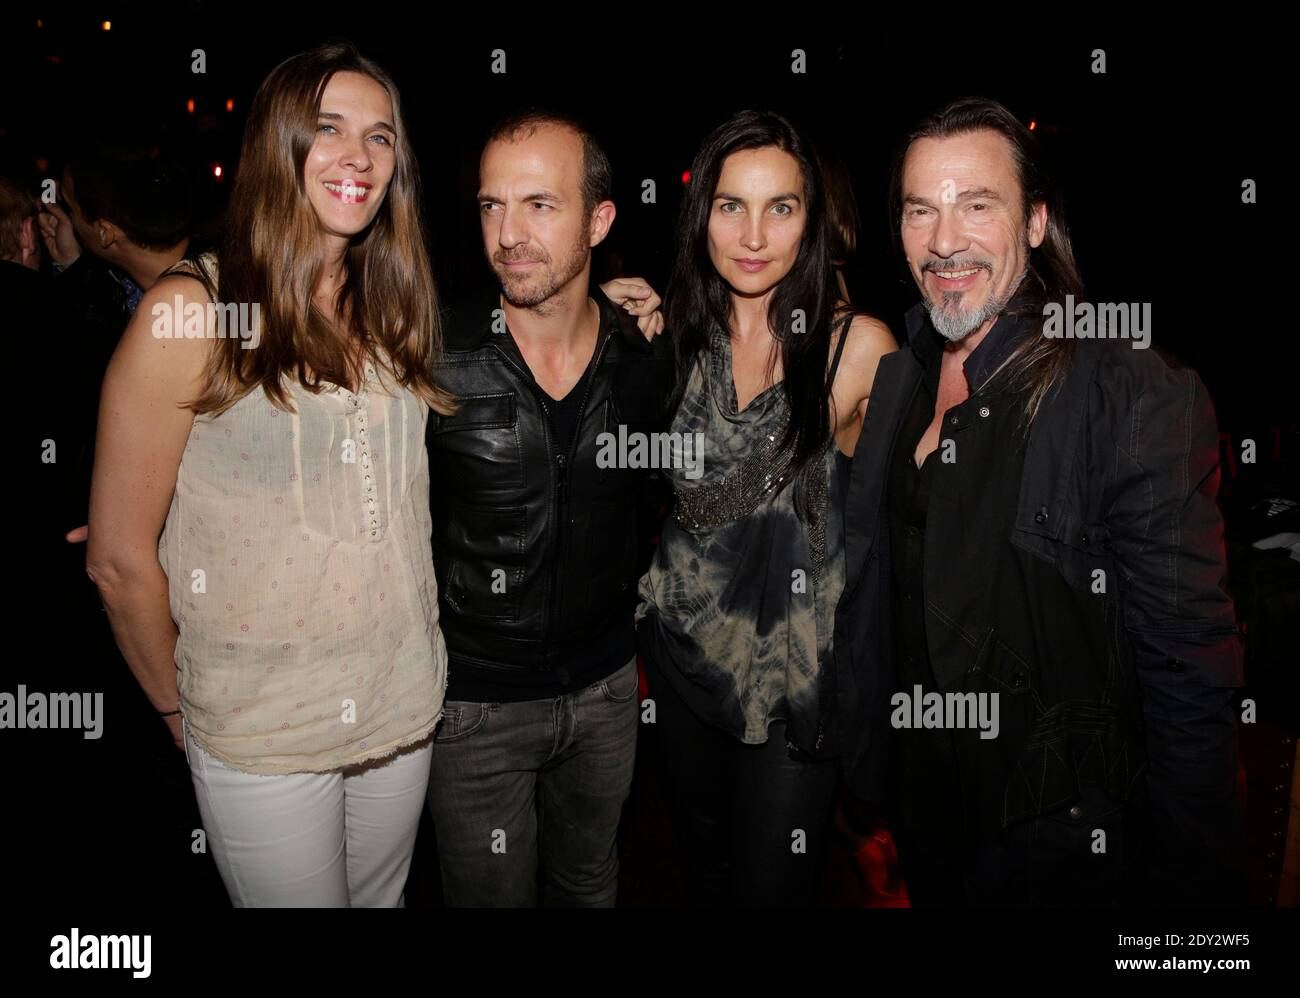 Florent Pagny His Wife Azucena Calogero And His Wife Gets A Diamond Disc For His Album Vieillir Avec Toi At Titty Twister In Paris France On October 01 2014 Photo By Jerome